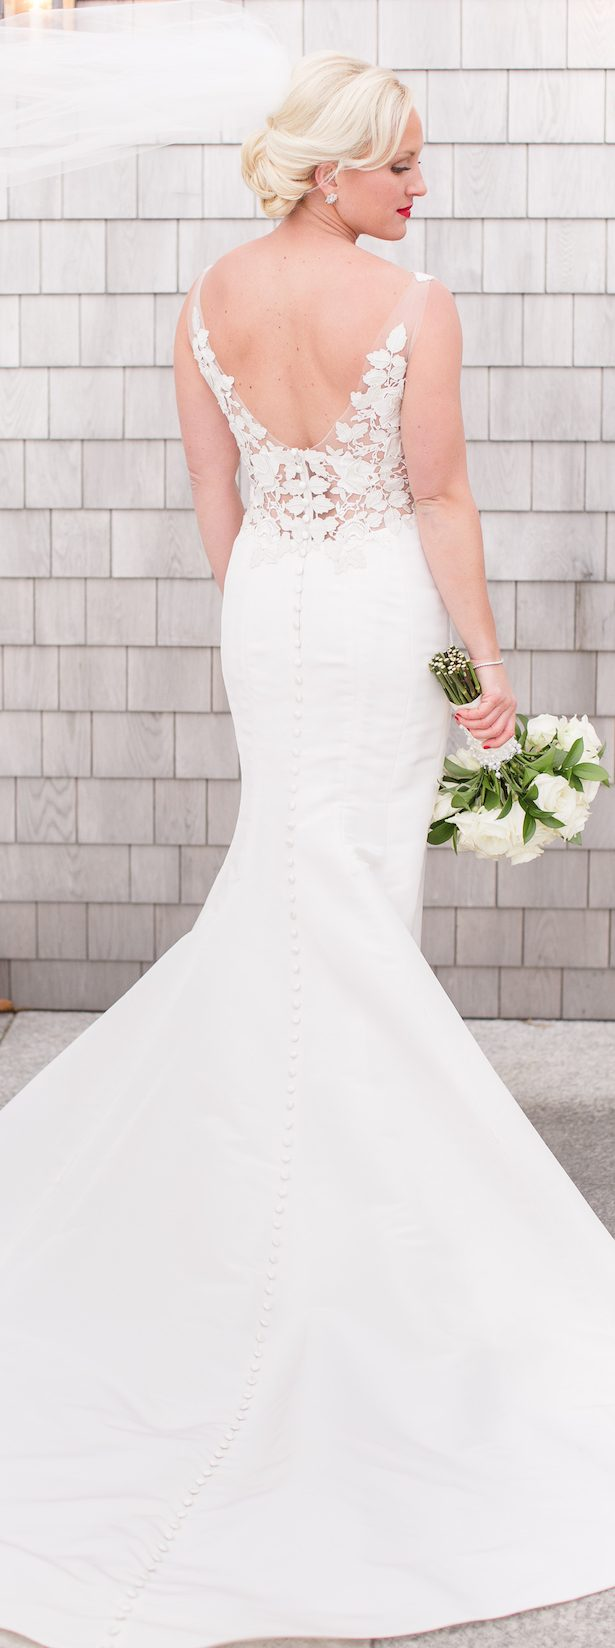 Non Strapless Wedding Dresses - Cape Cod Celebrations - The Ewings Photography Studio